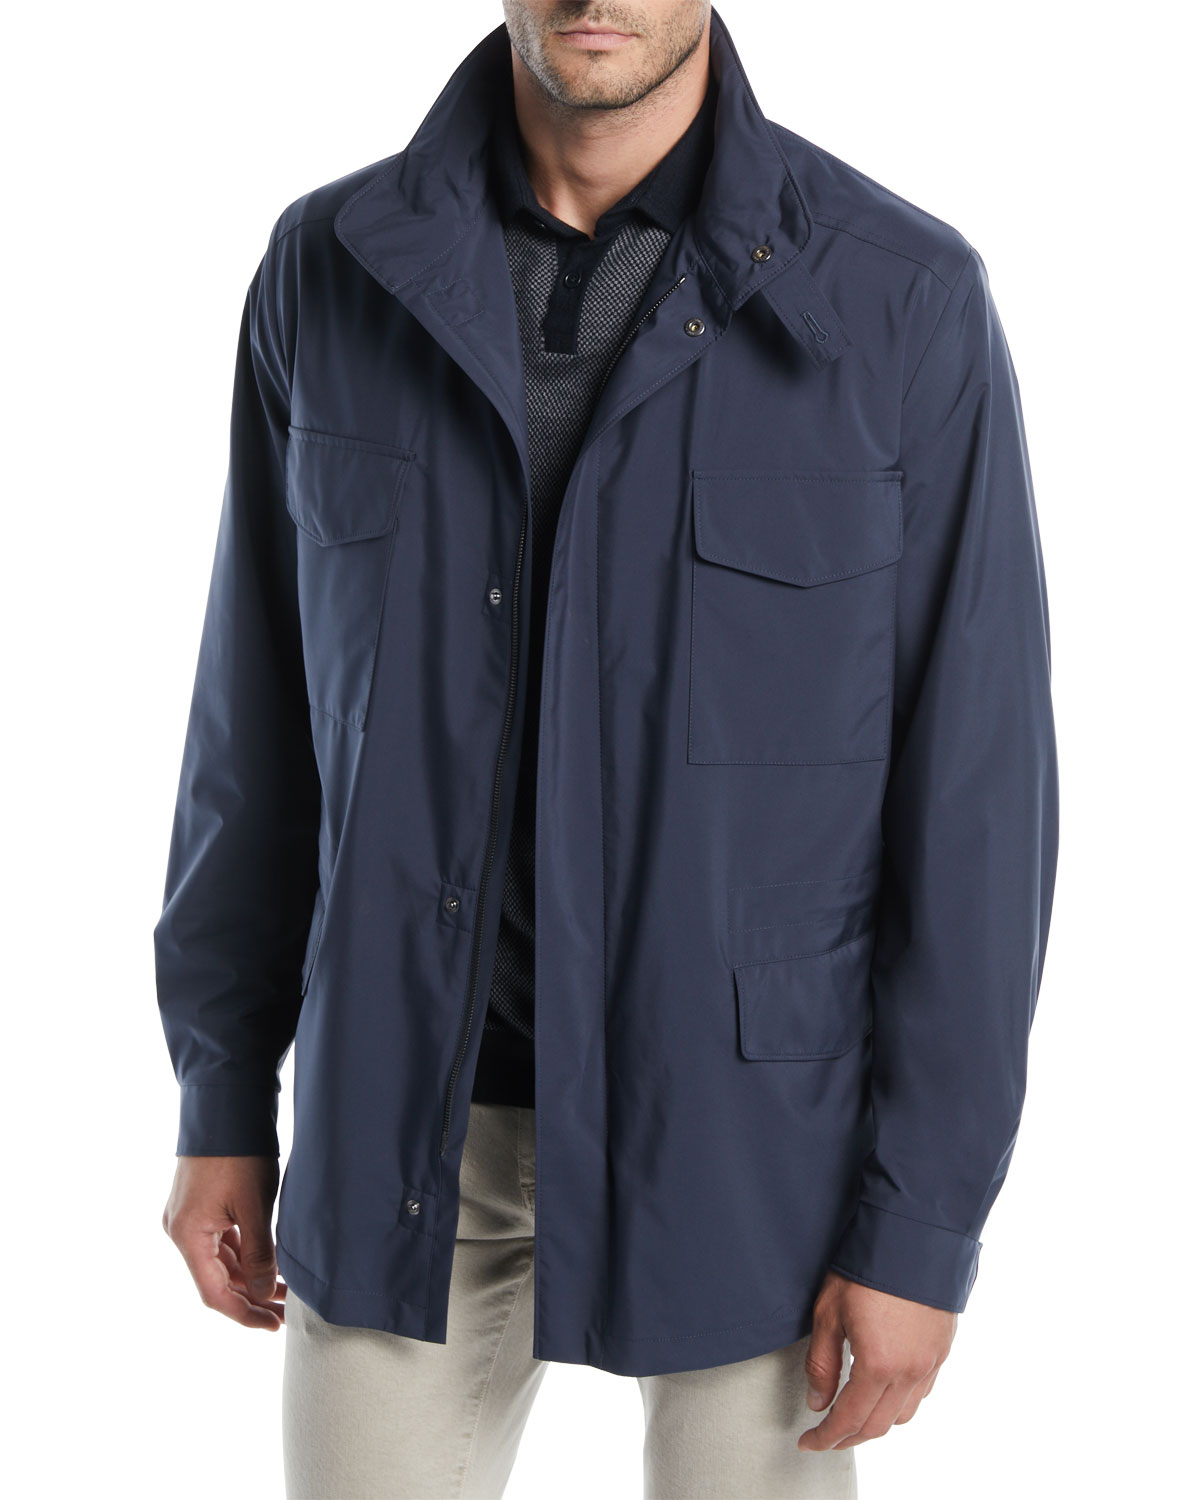 Loro Piana Men's Traveler Windmate Storm System Jacket